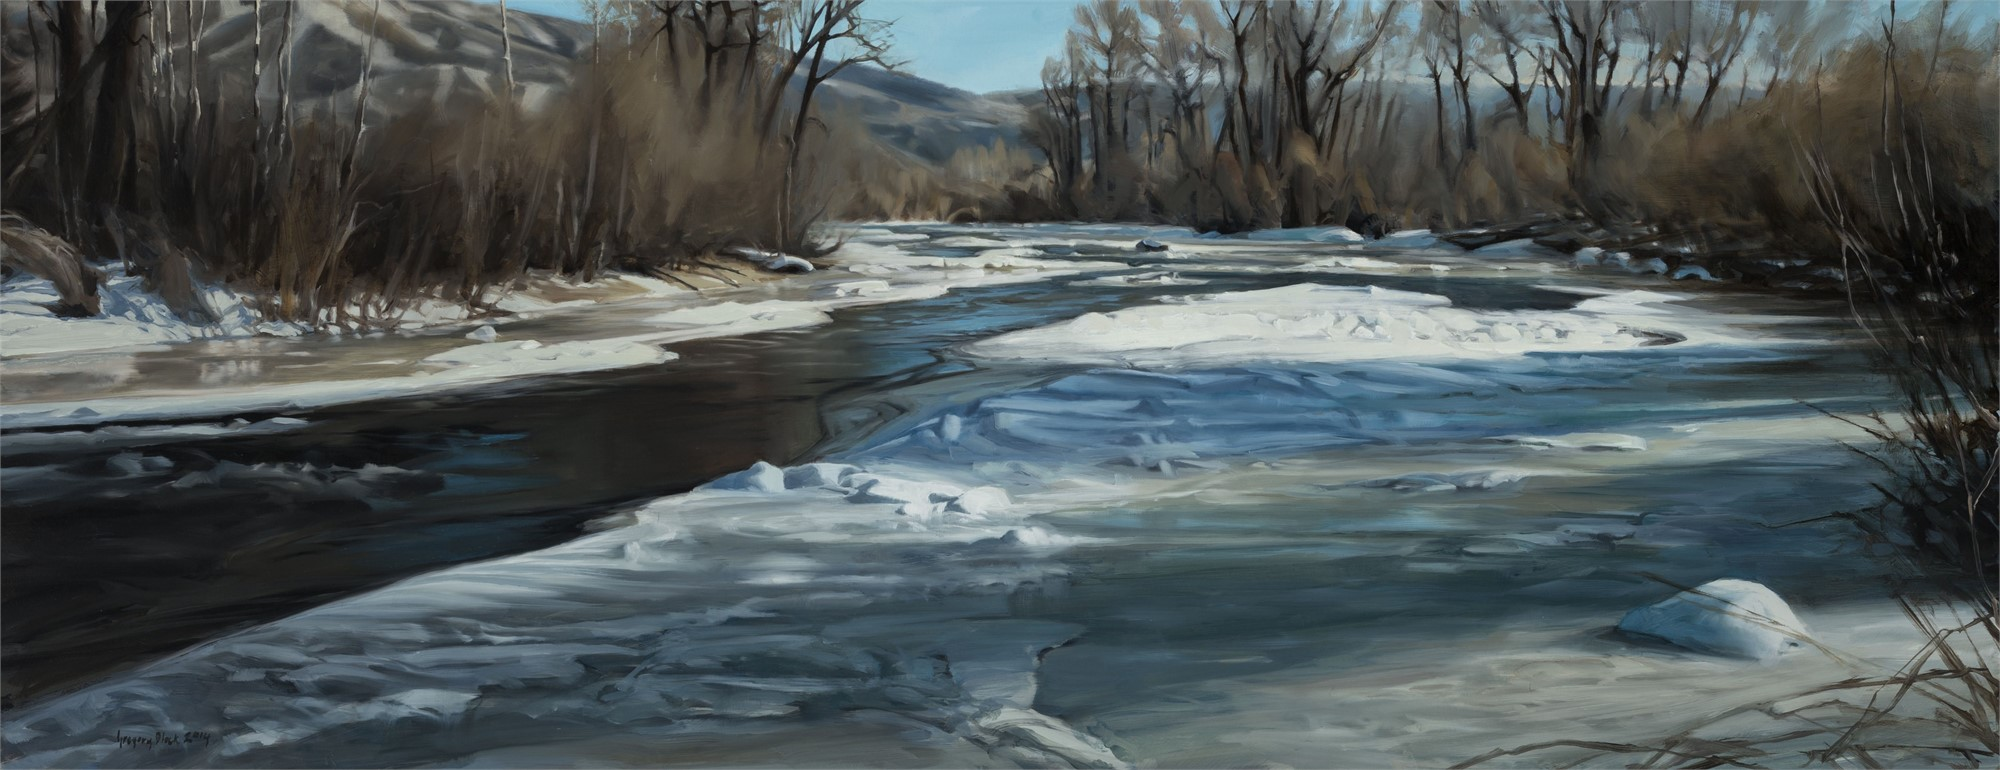 Yampa River Early Spring by Gregory Block